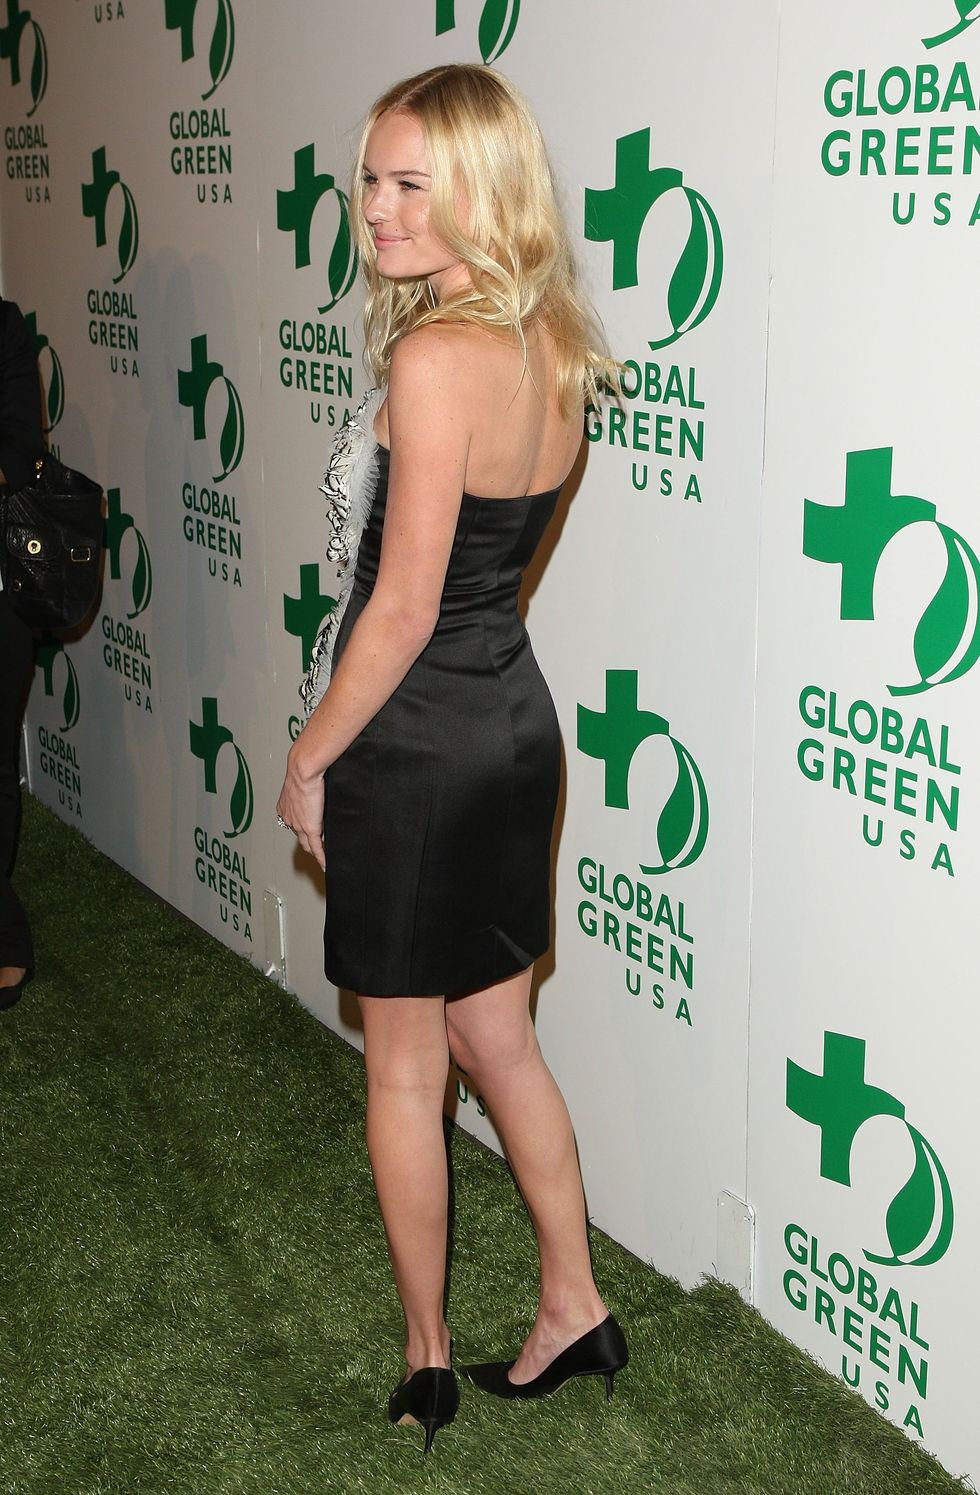 kate-bosworth-global-green-usas-6th-annual-pre-oscar-party-in-hollywood-01